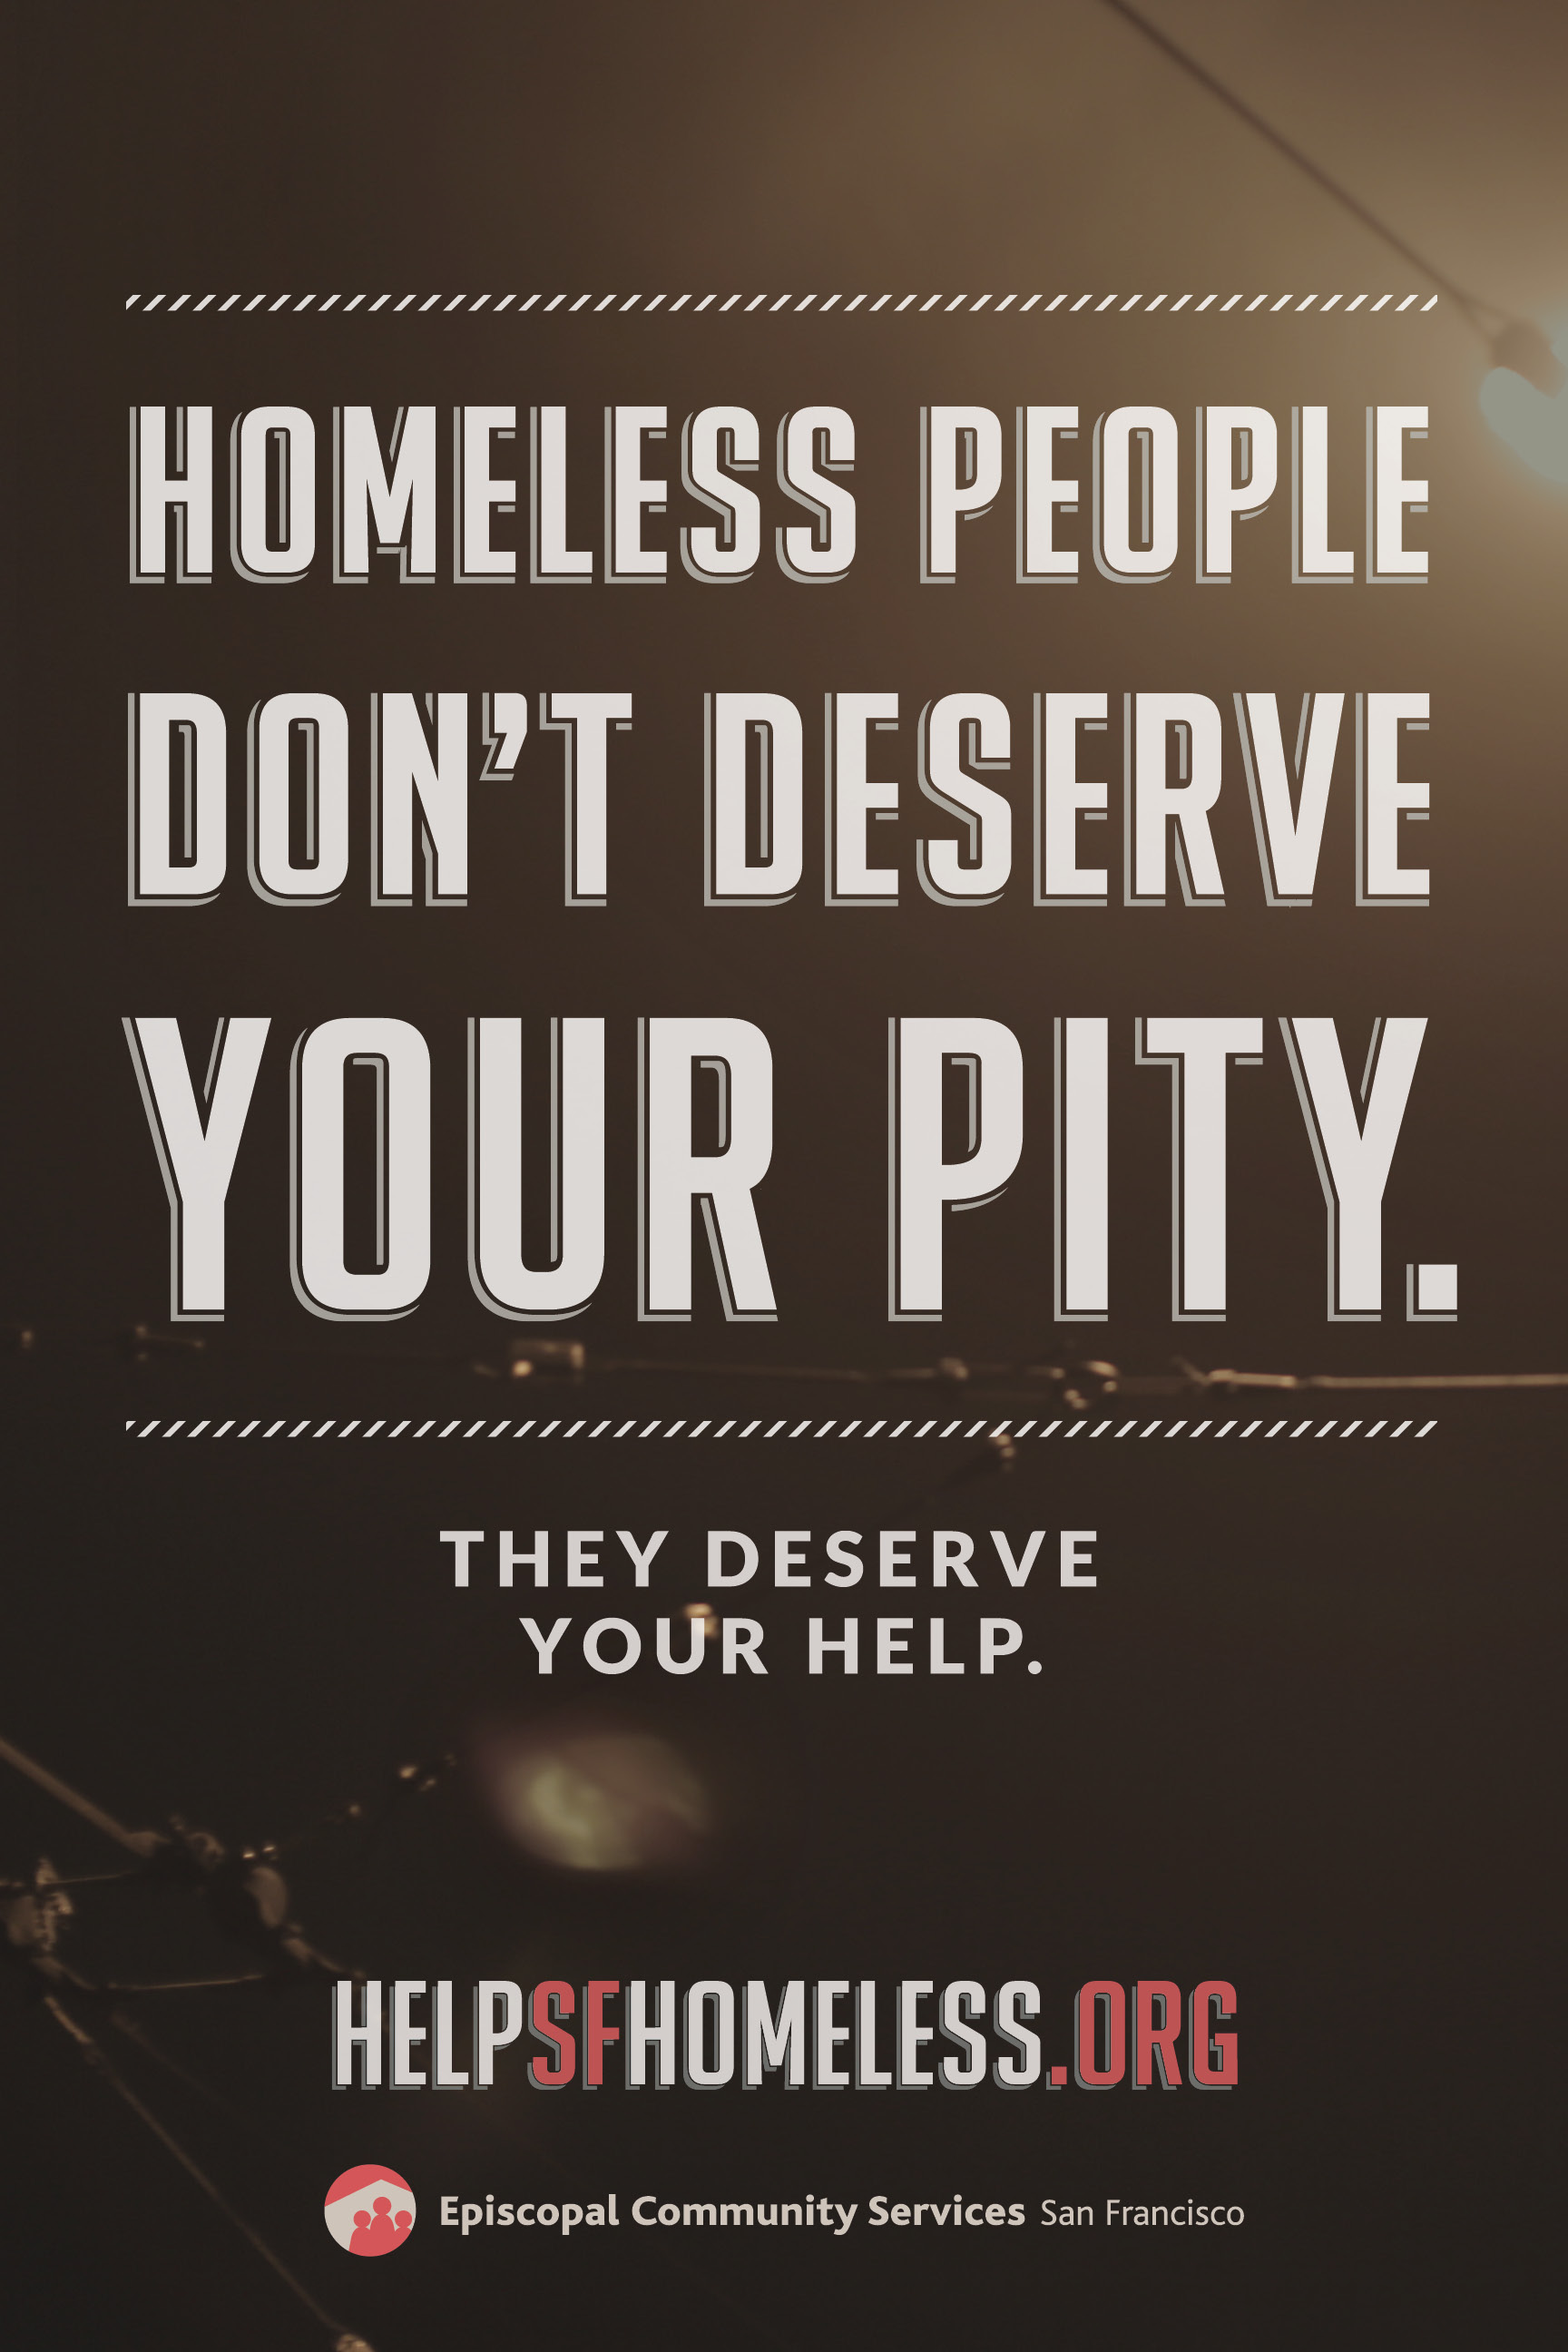 Feeding The Homeless Quotes Helping The Homeless Quotes